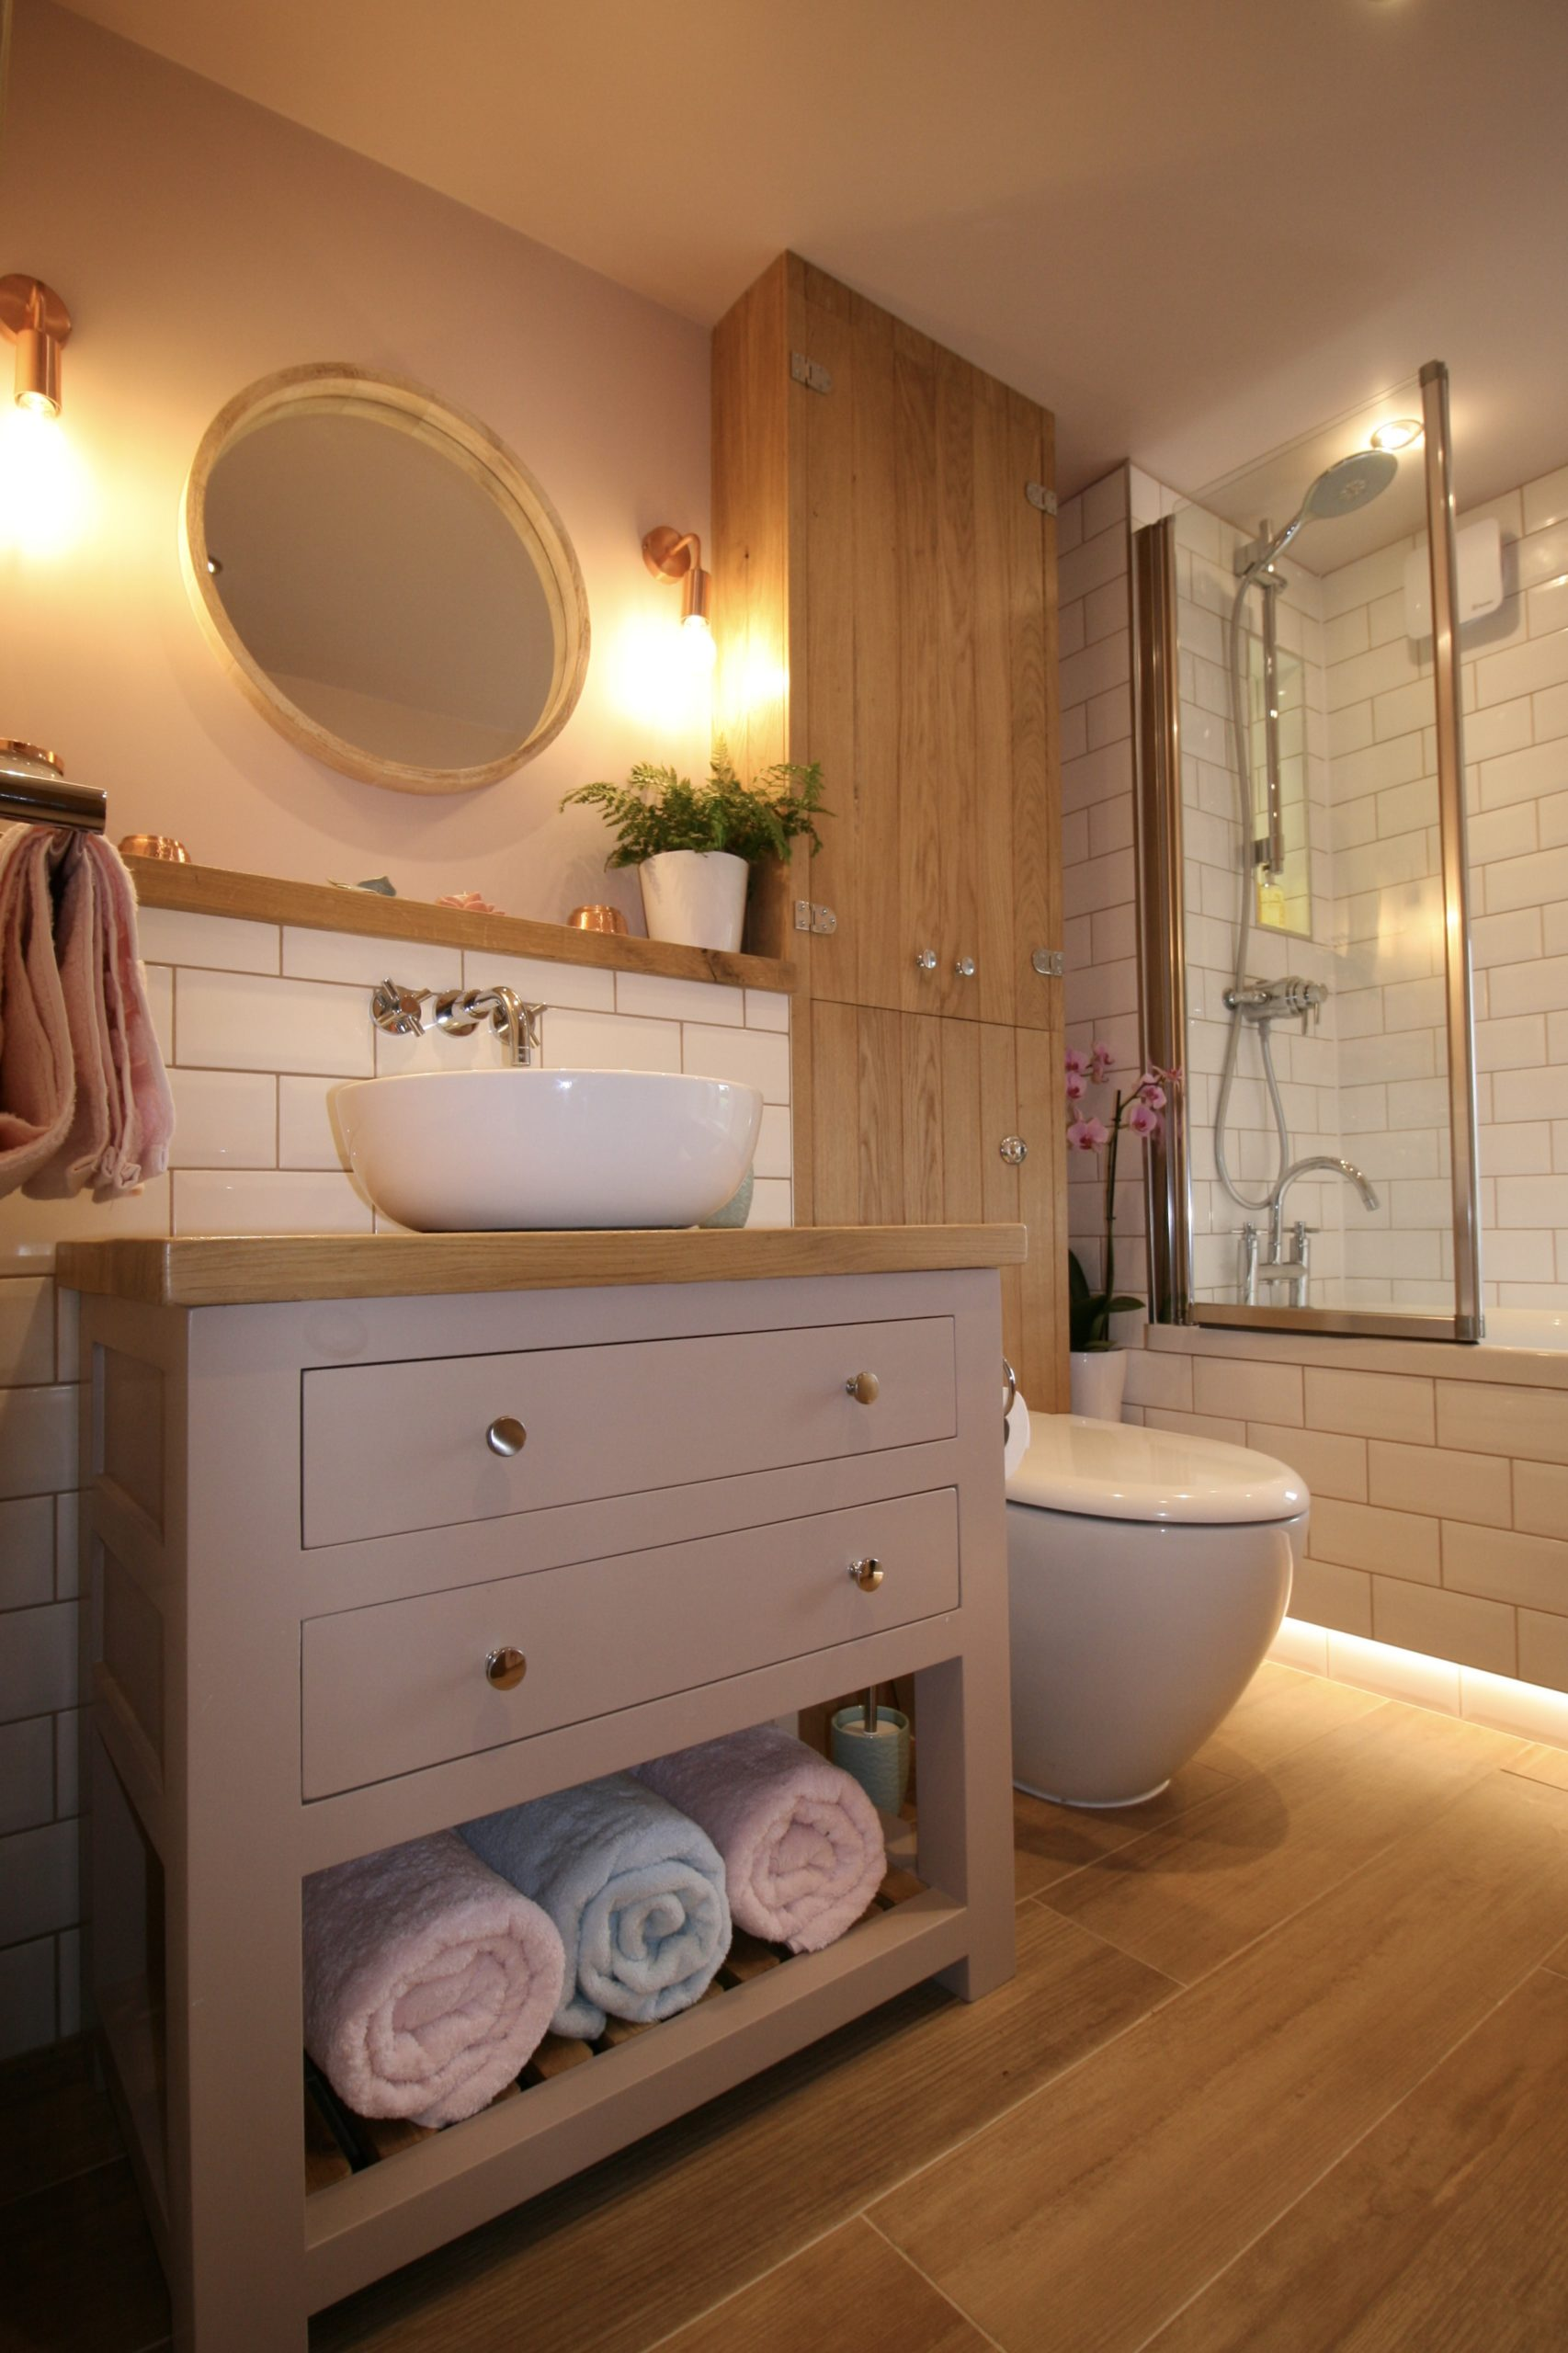 Bathrooms - Oak vanity painted in Farrow & Ball Dead Salmon in bathroom designed by Amelia Wilson Interiors